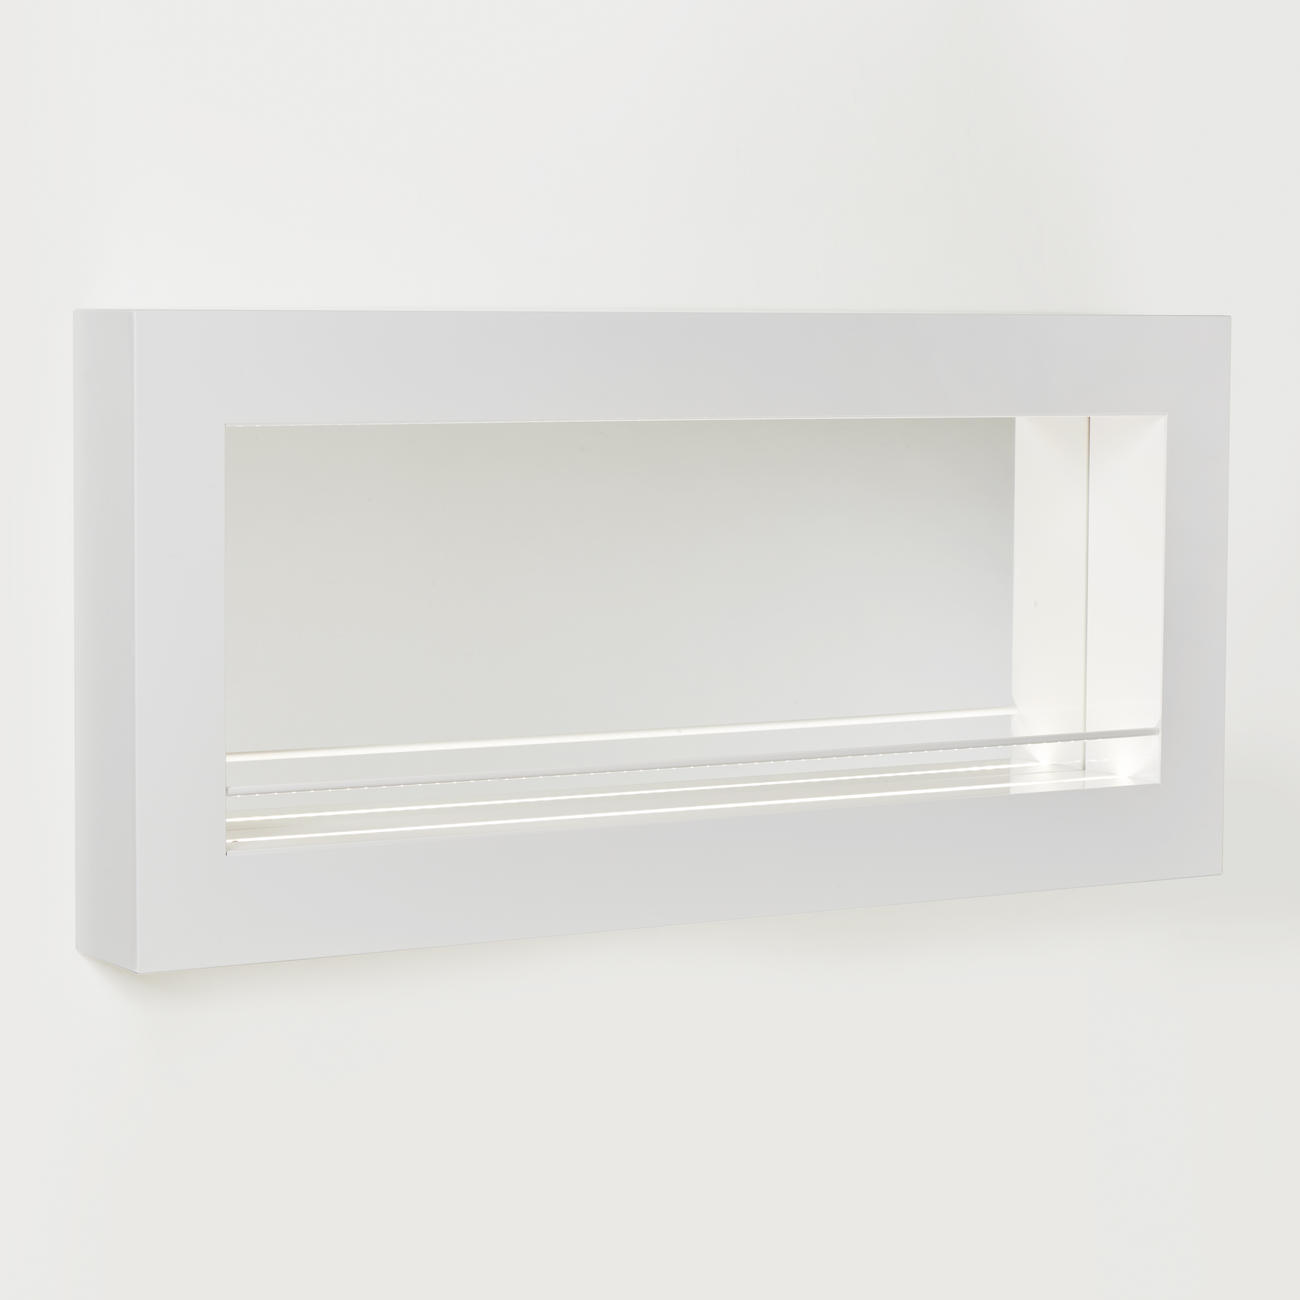 Probell Encore 110 Led Wandregal Barelement 110 X 52 X 12 Cm Anthrazit